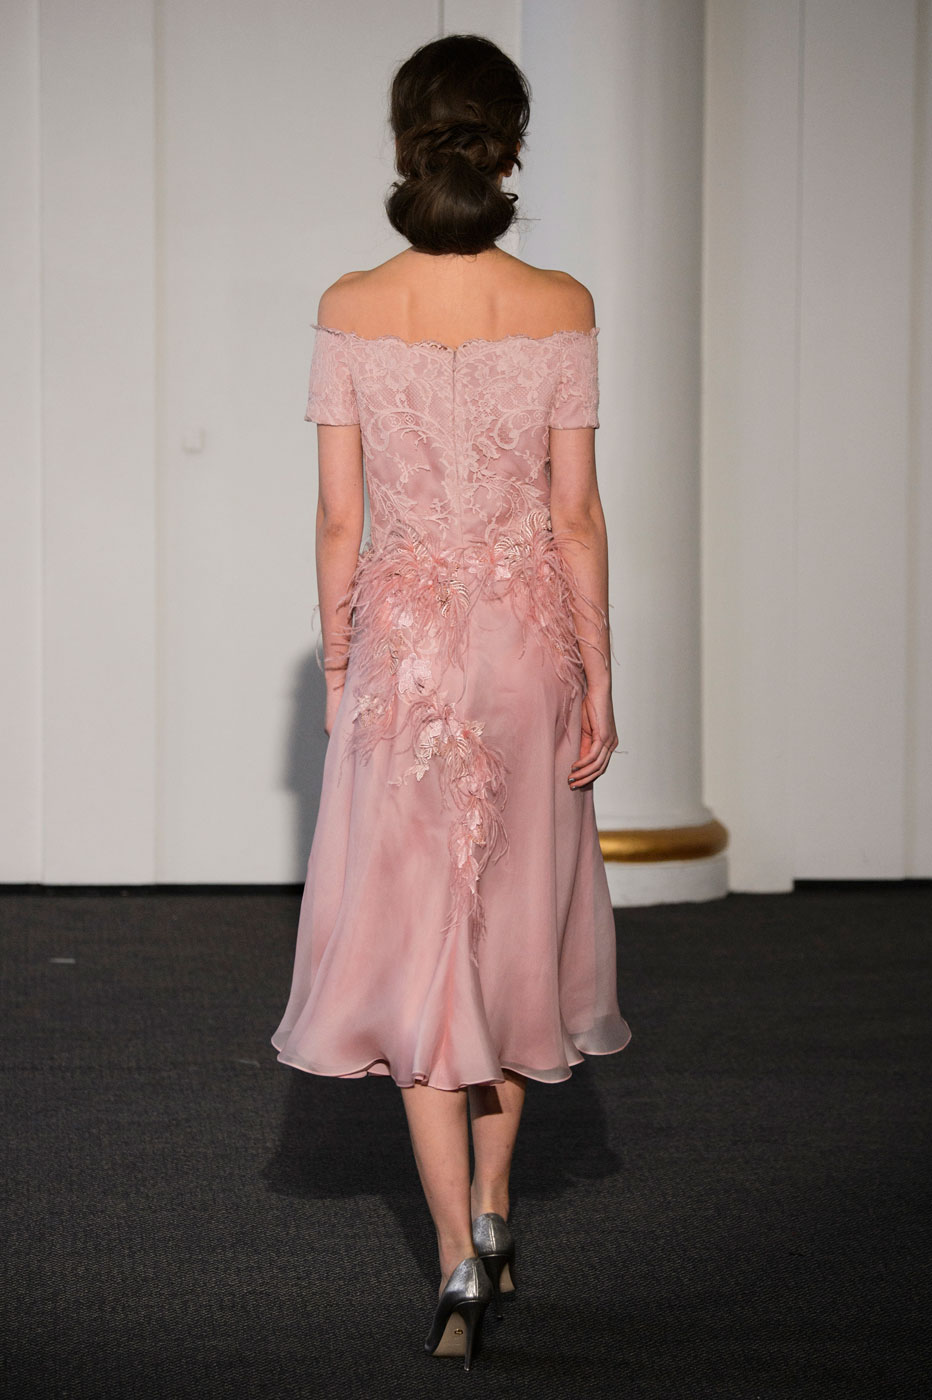 Busardi-fashion-runway-show-haute-couture-paris-spring-2015-the-impression-39